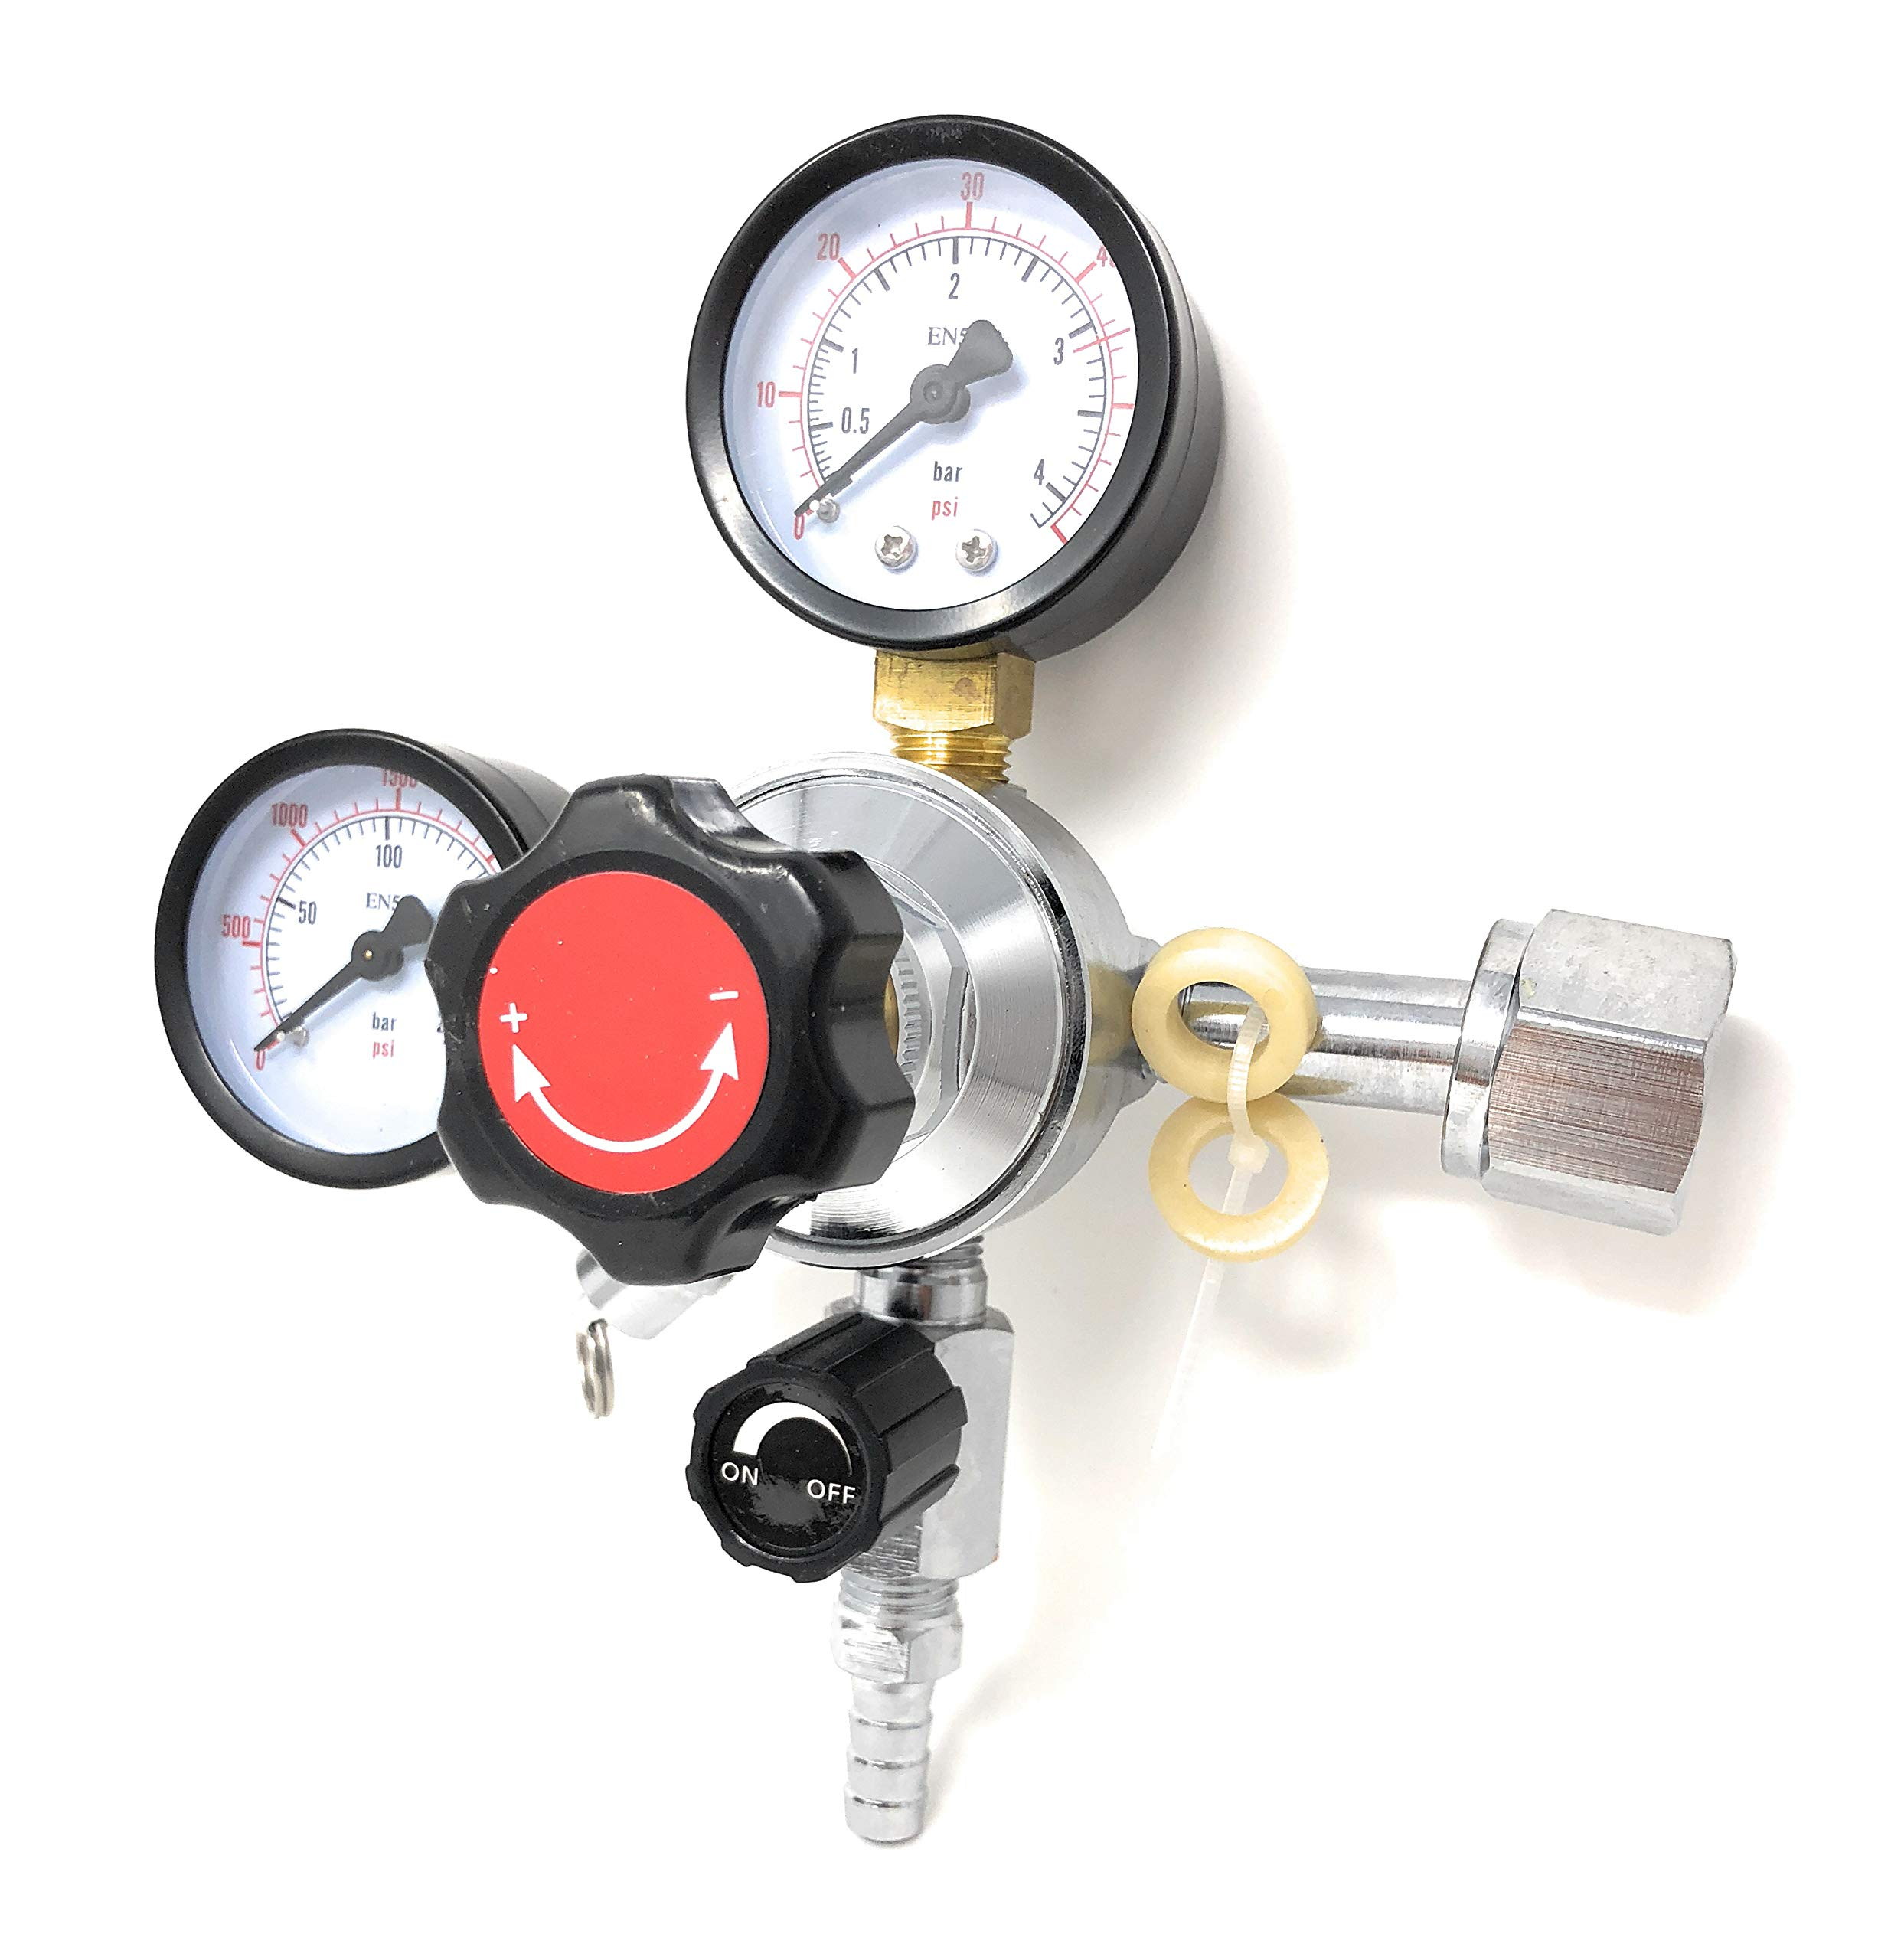 MOD Complete CO2 Beer Regulator Dual Gauge Draft Beer Dispensing Keeps gerator Heavy Duty 0 - 60 PSI - 0 to 3000 Tank Pressure CGA-320 Inlet Connection 3/8'' O.D. Outlet Feature